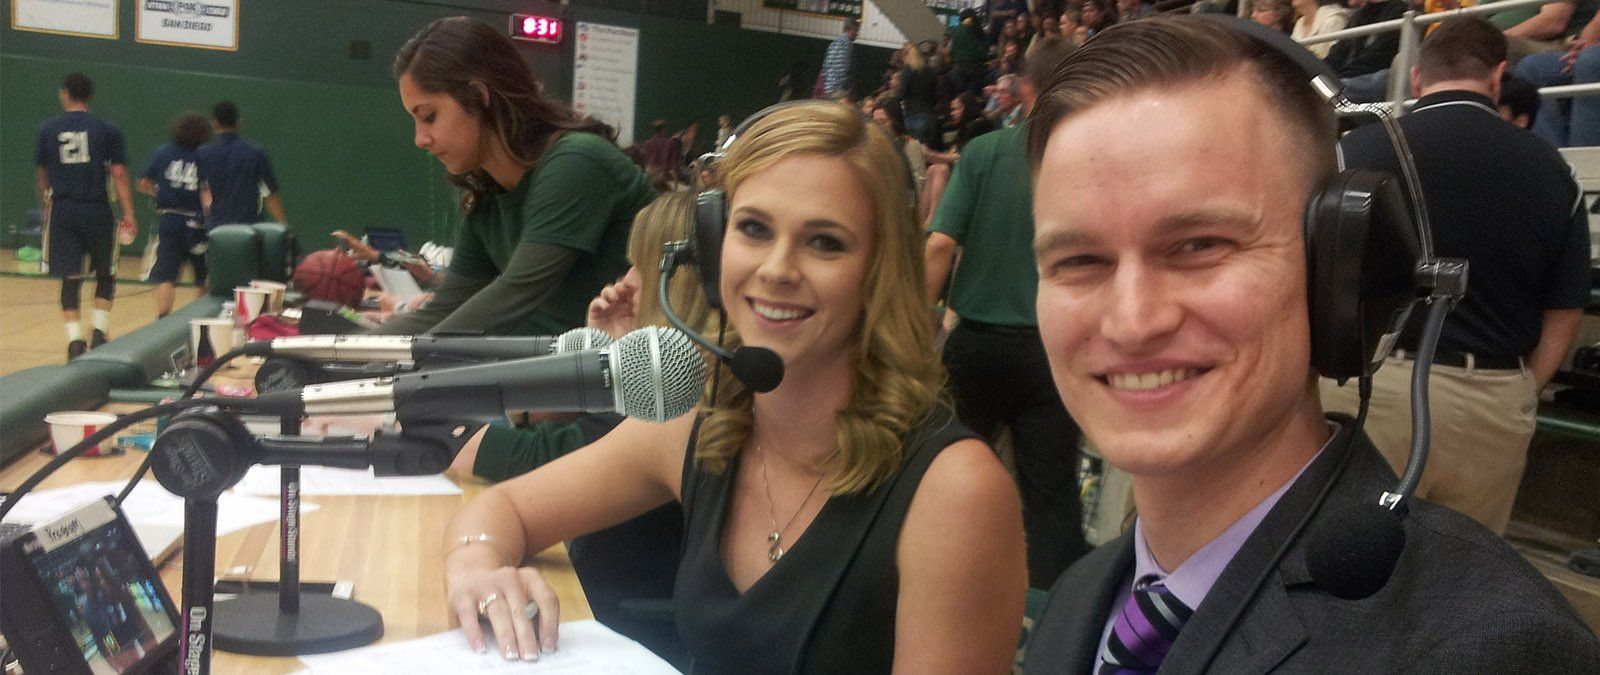 A female and male student broadcasters take in a basketball game.